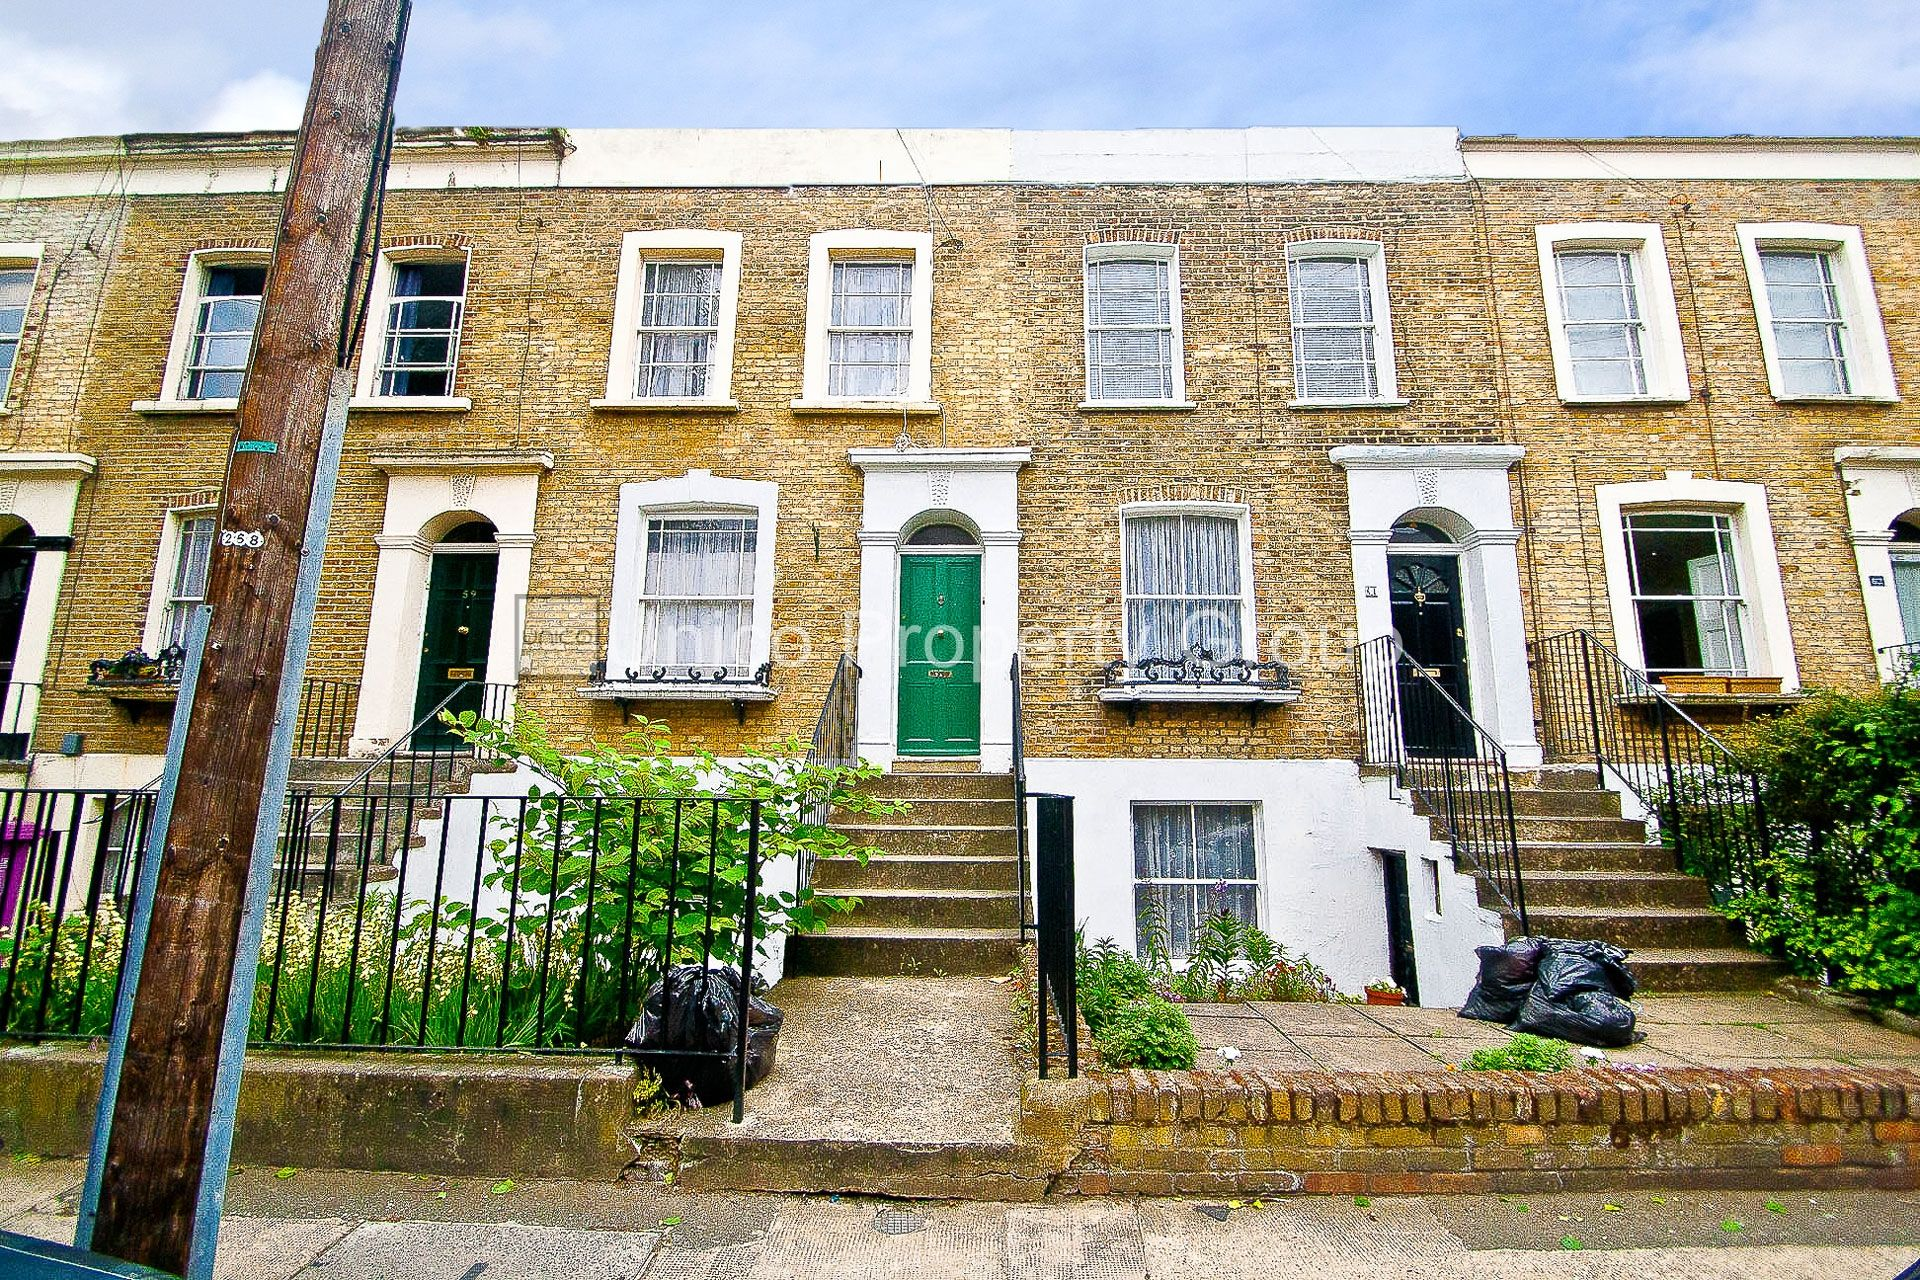 Cephas Avenue  Stepney Green  London  E1